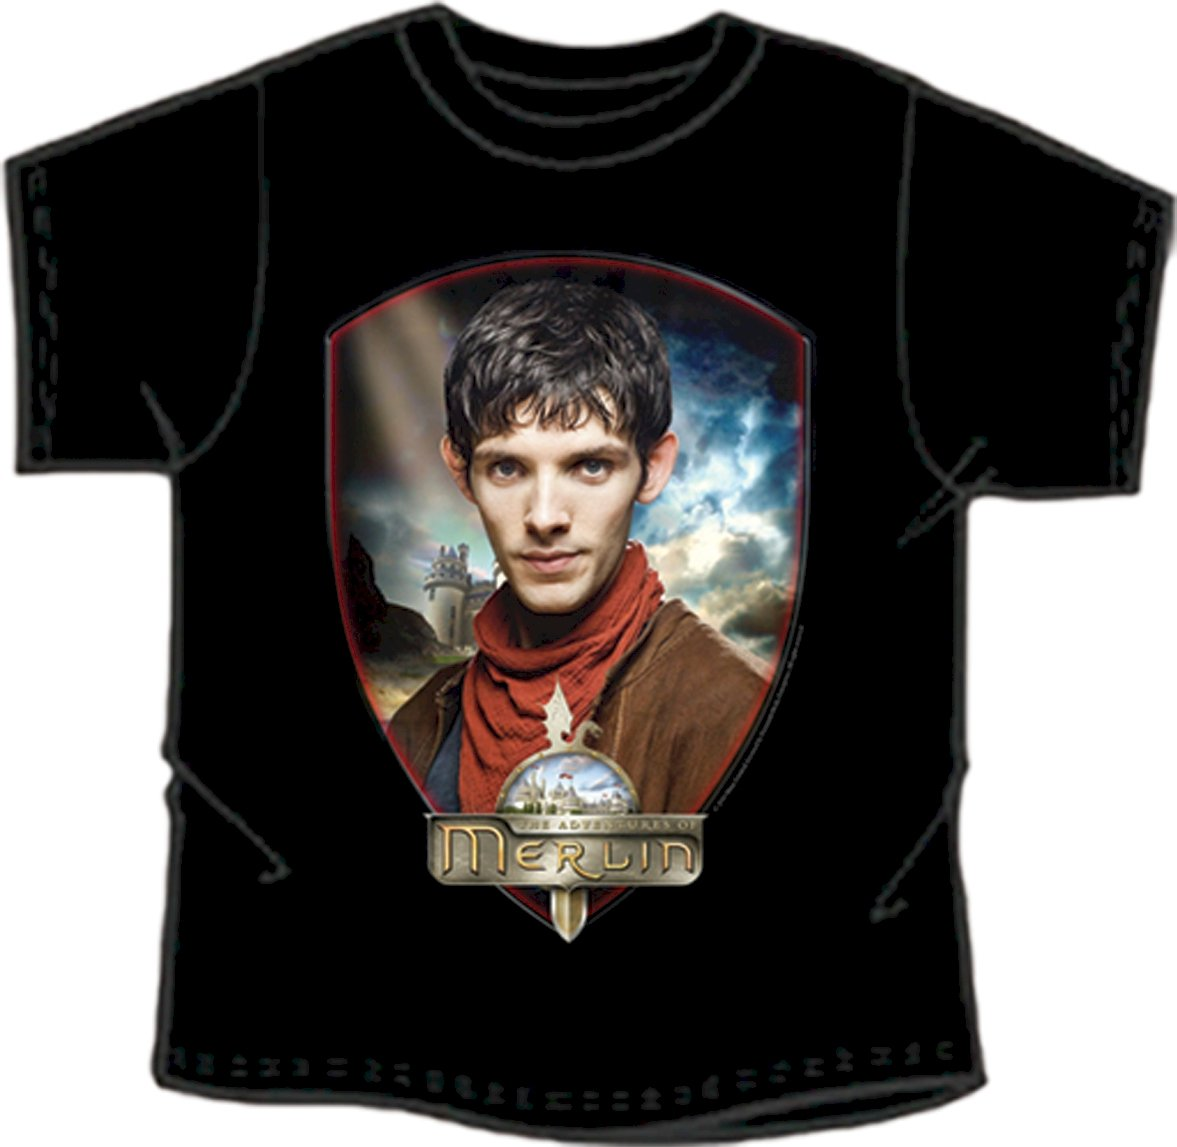 BBC Merlin Gifts Mens Womens Printing T Shirt Design Tee